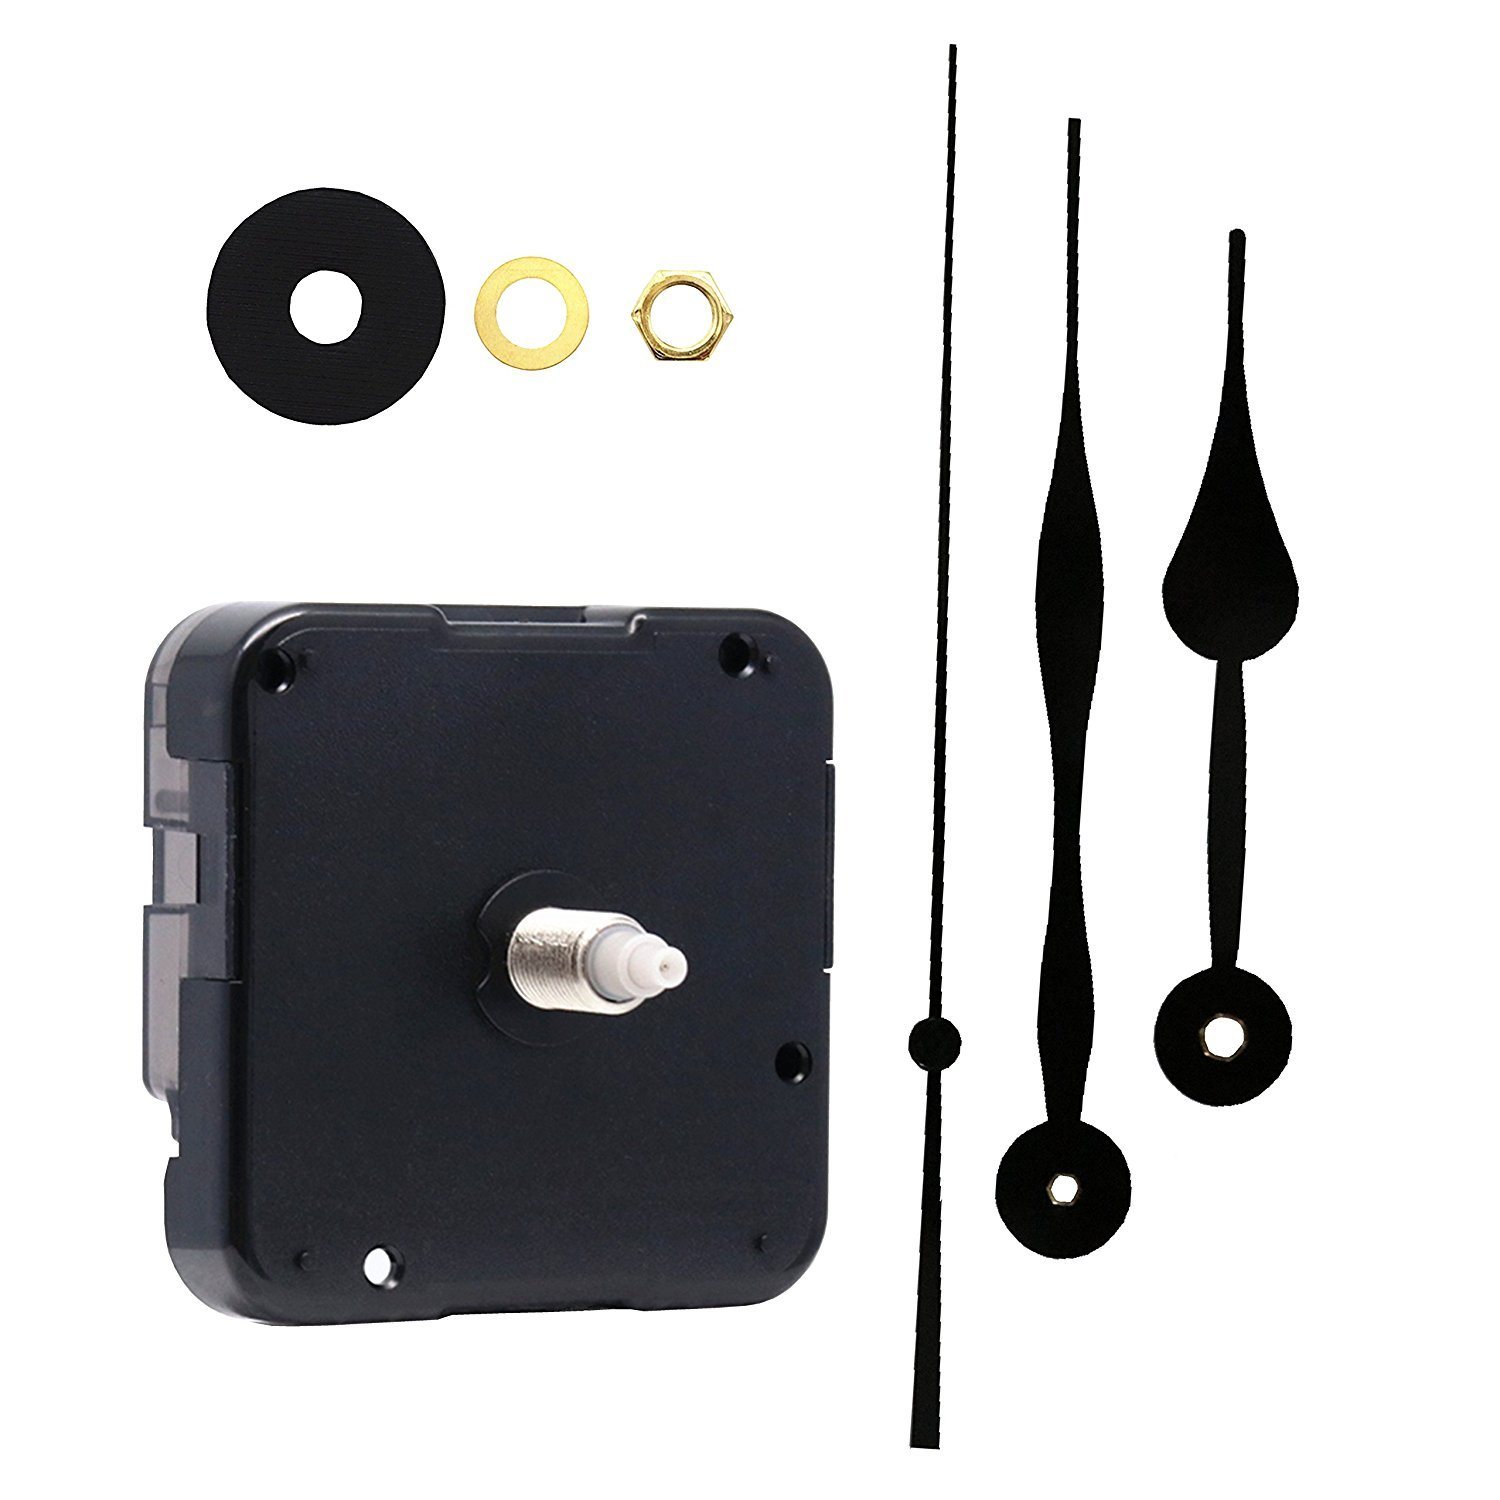 Youngtown 12888 Movement for Clock Repair Replacement Kit Sweep Silent Movement Clock DIY,15/32 Inch Maximum Dial Thickness, 51/64 Inch Total Shaft Length